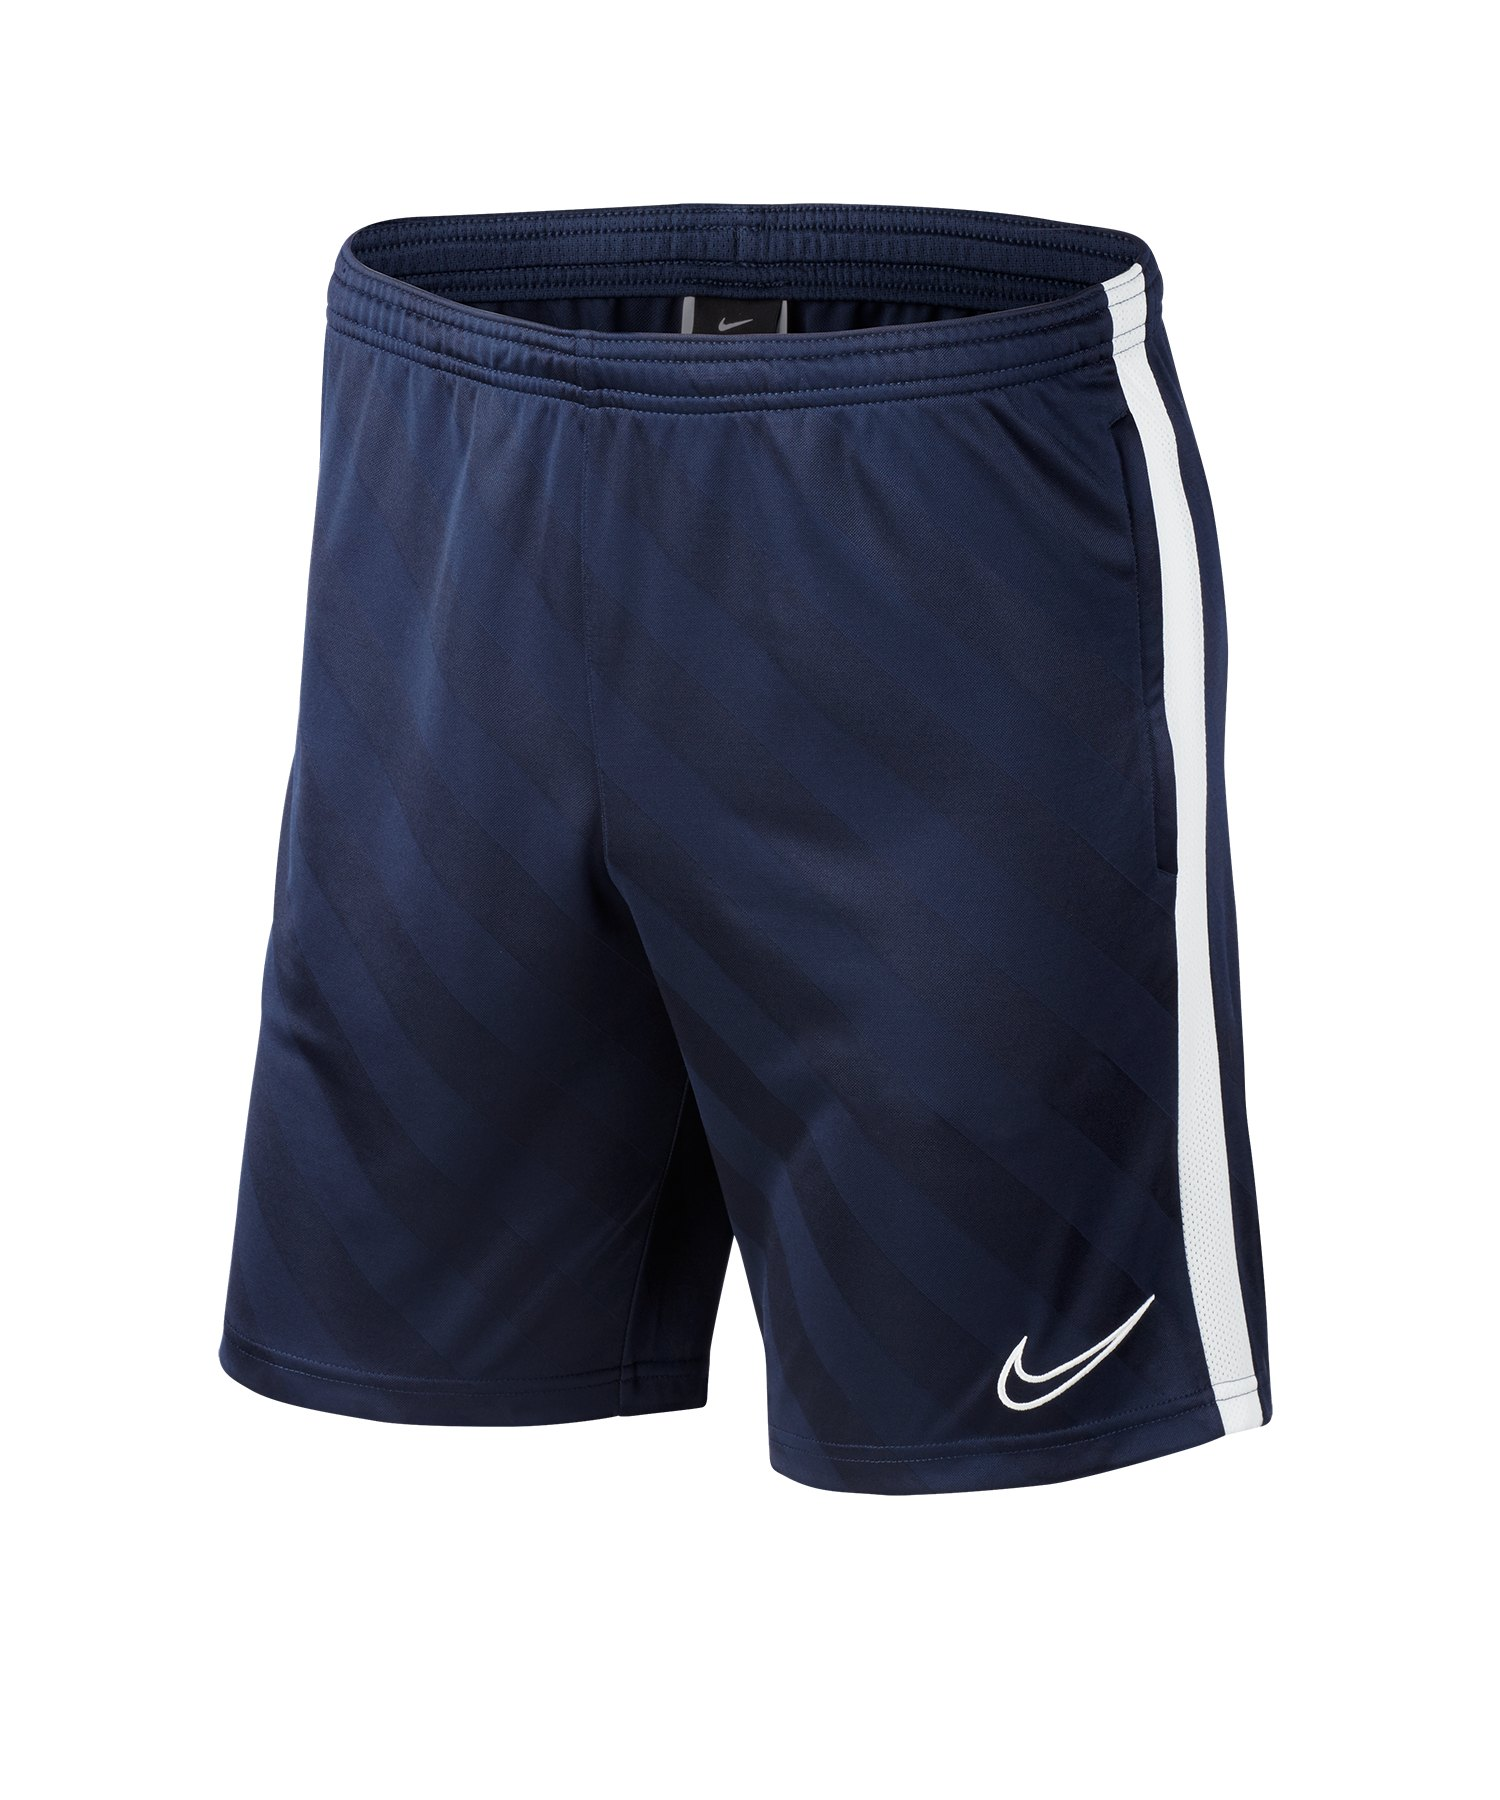 Nike Academy 19 Breathe Short Kids Blau F451 - blau